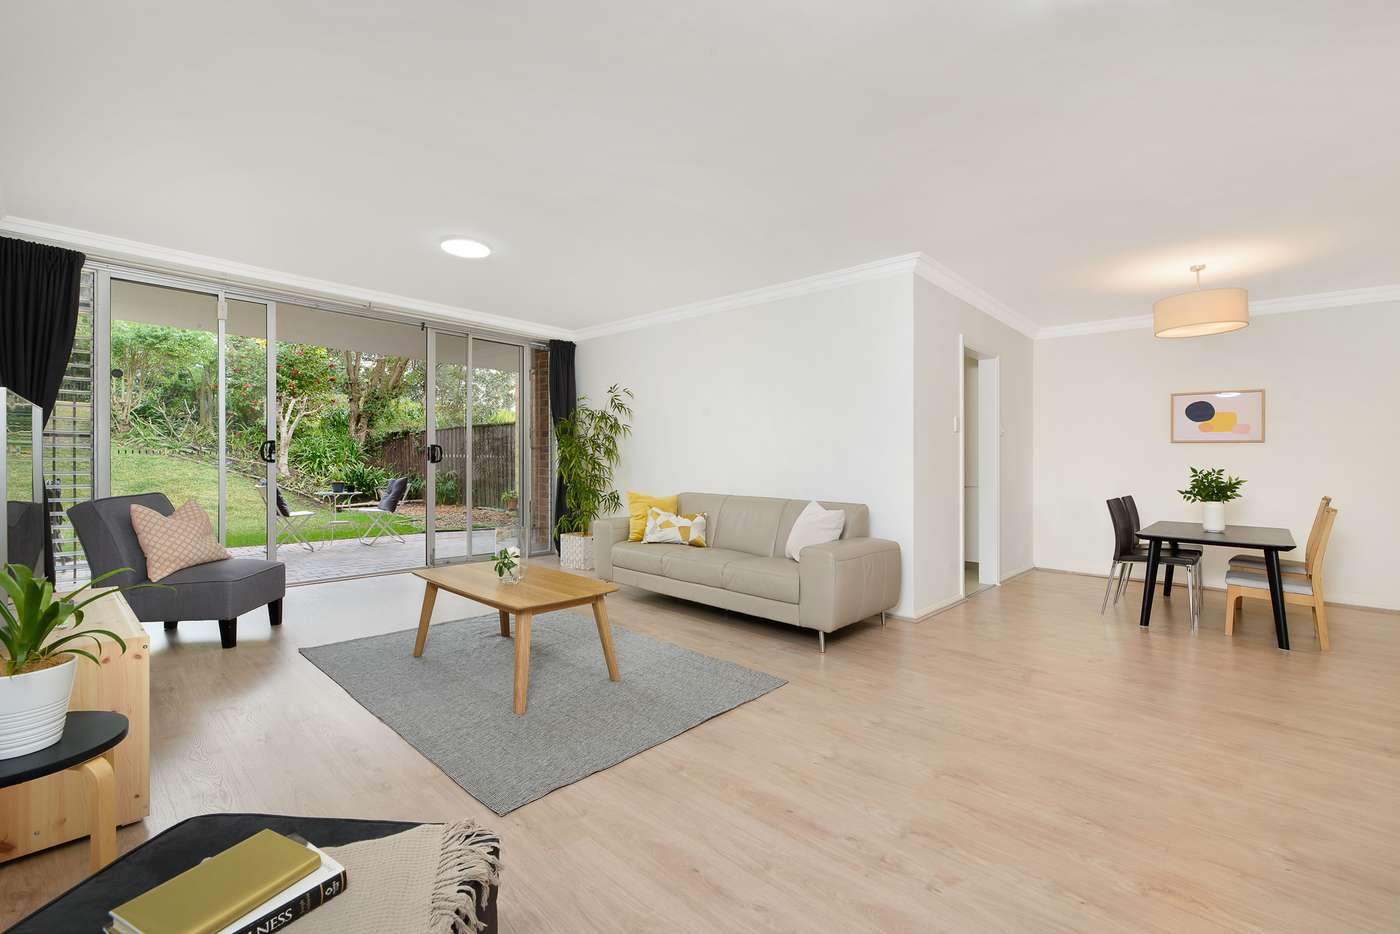 Fifth view of Homely apartment listing, 11/560-562 Pacific Highway, Killara NSW 2071